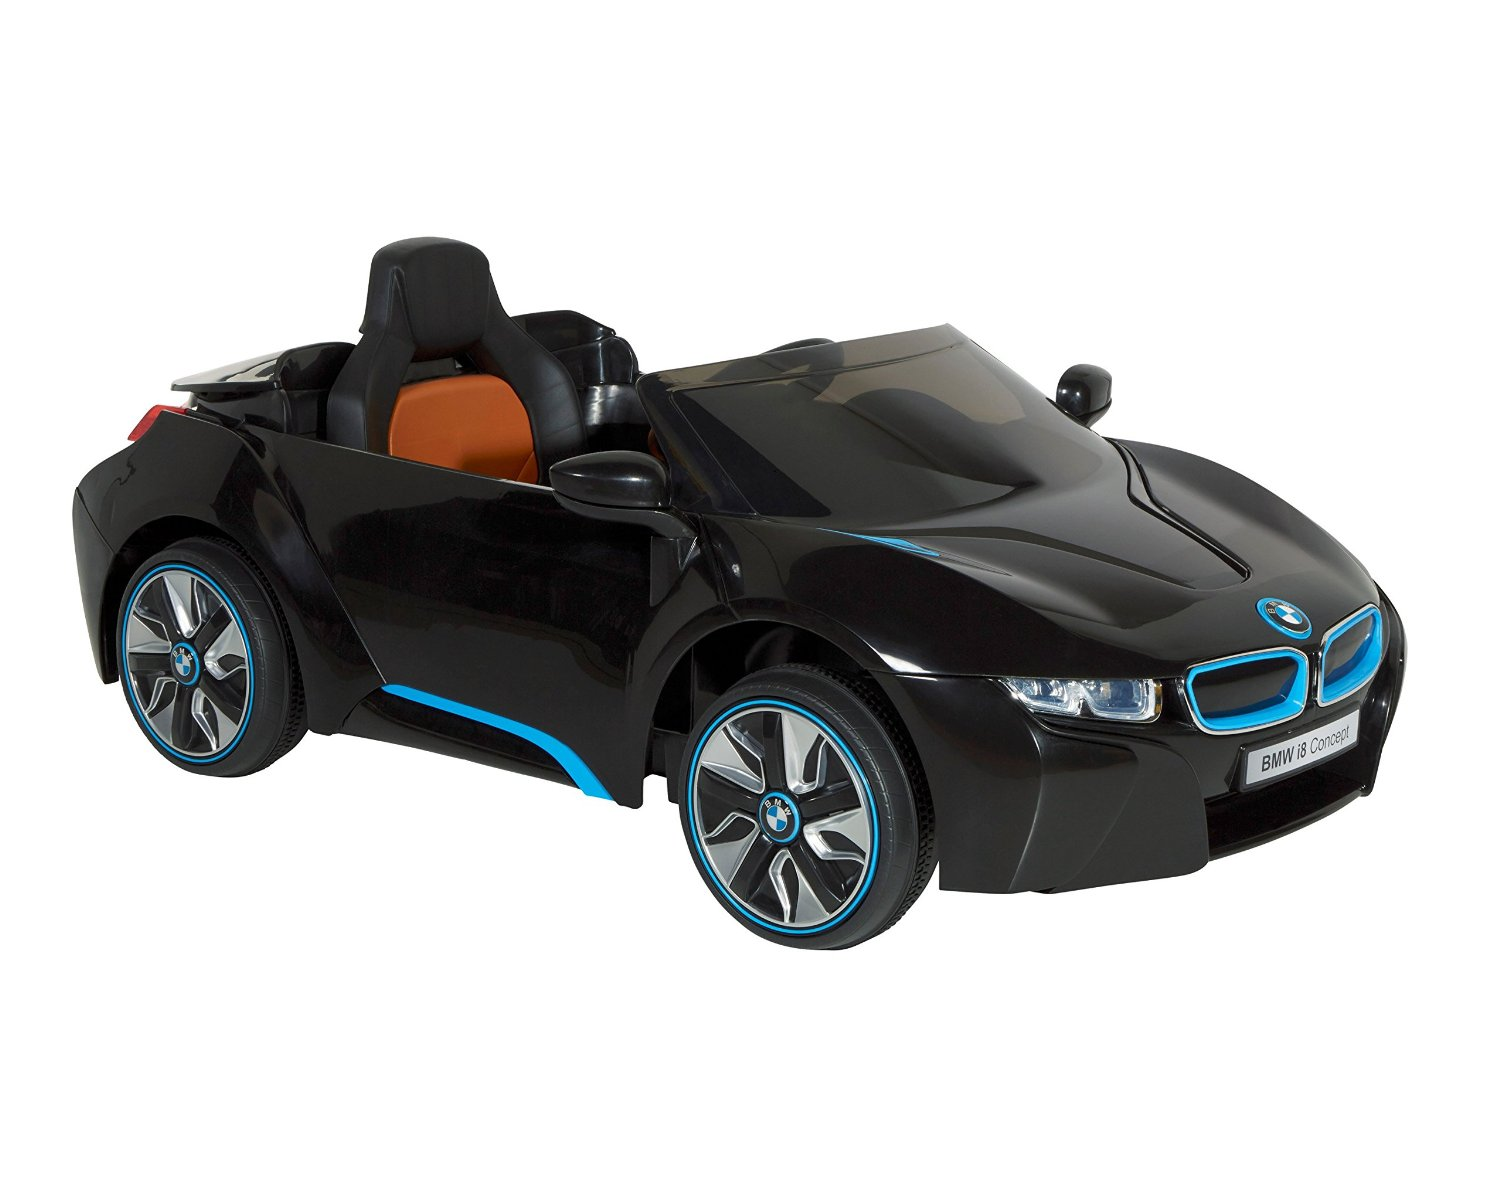 Amazon.com : BMW i8 Concept 6-volt Electric Ride-On Car, White/Black/Blue